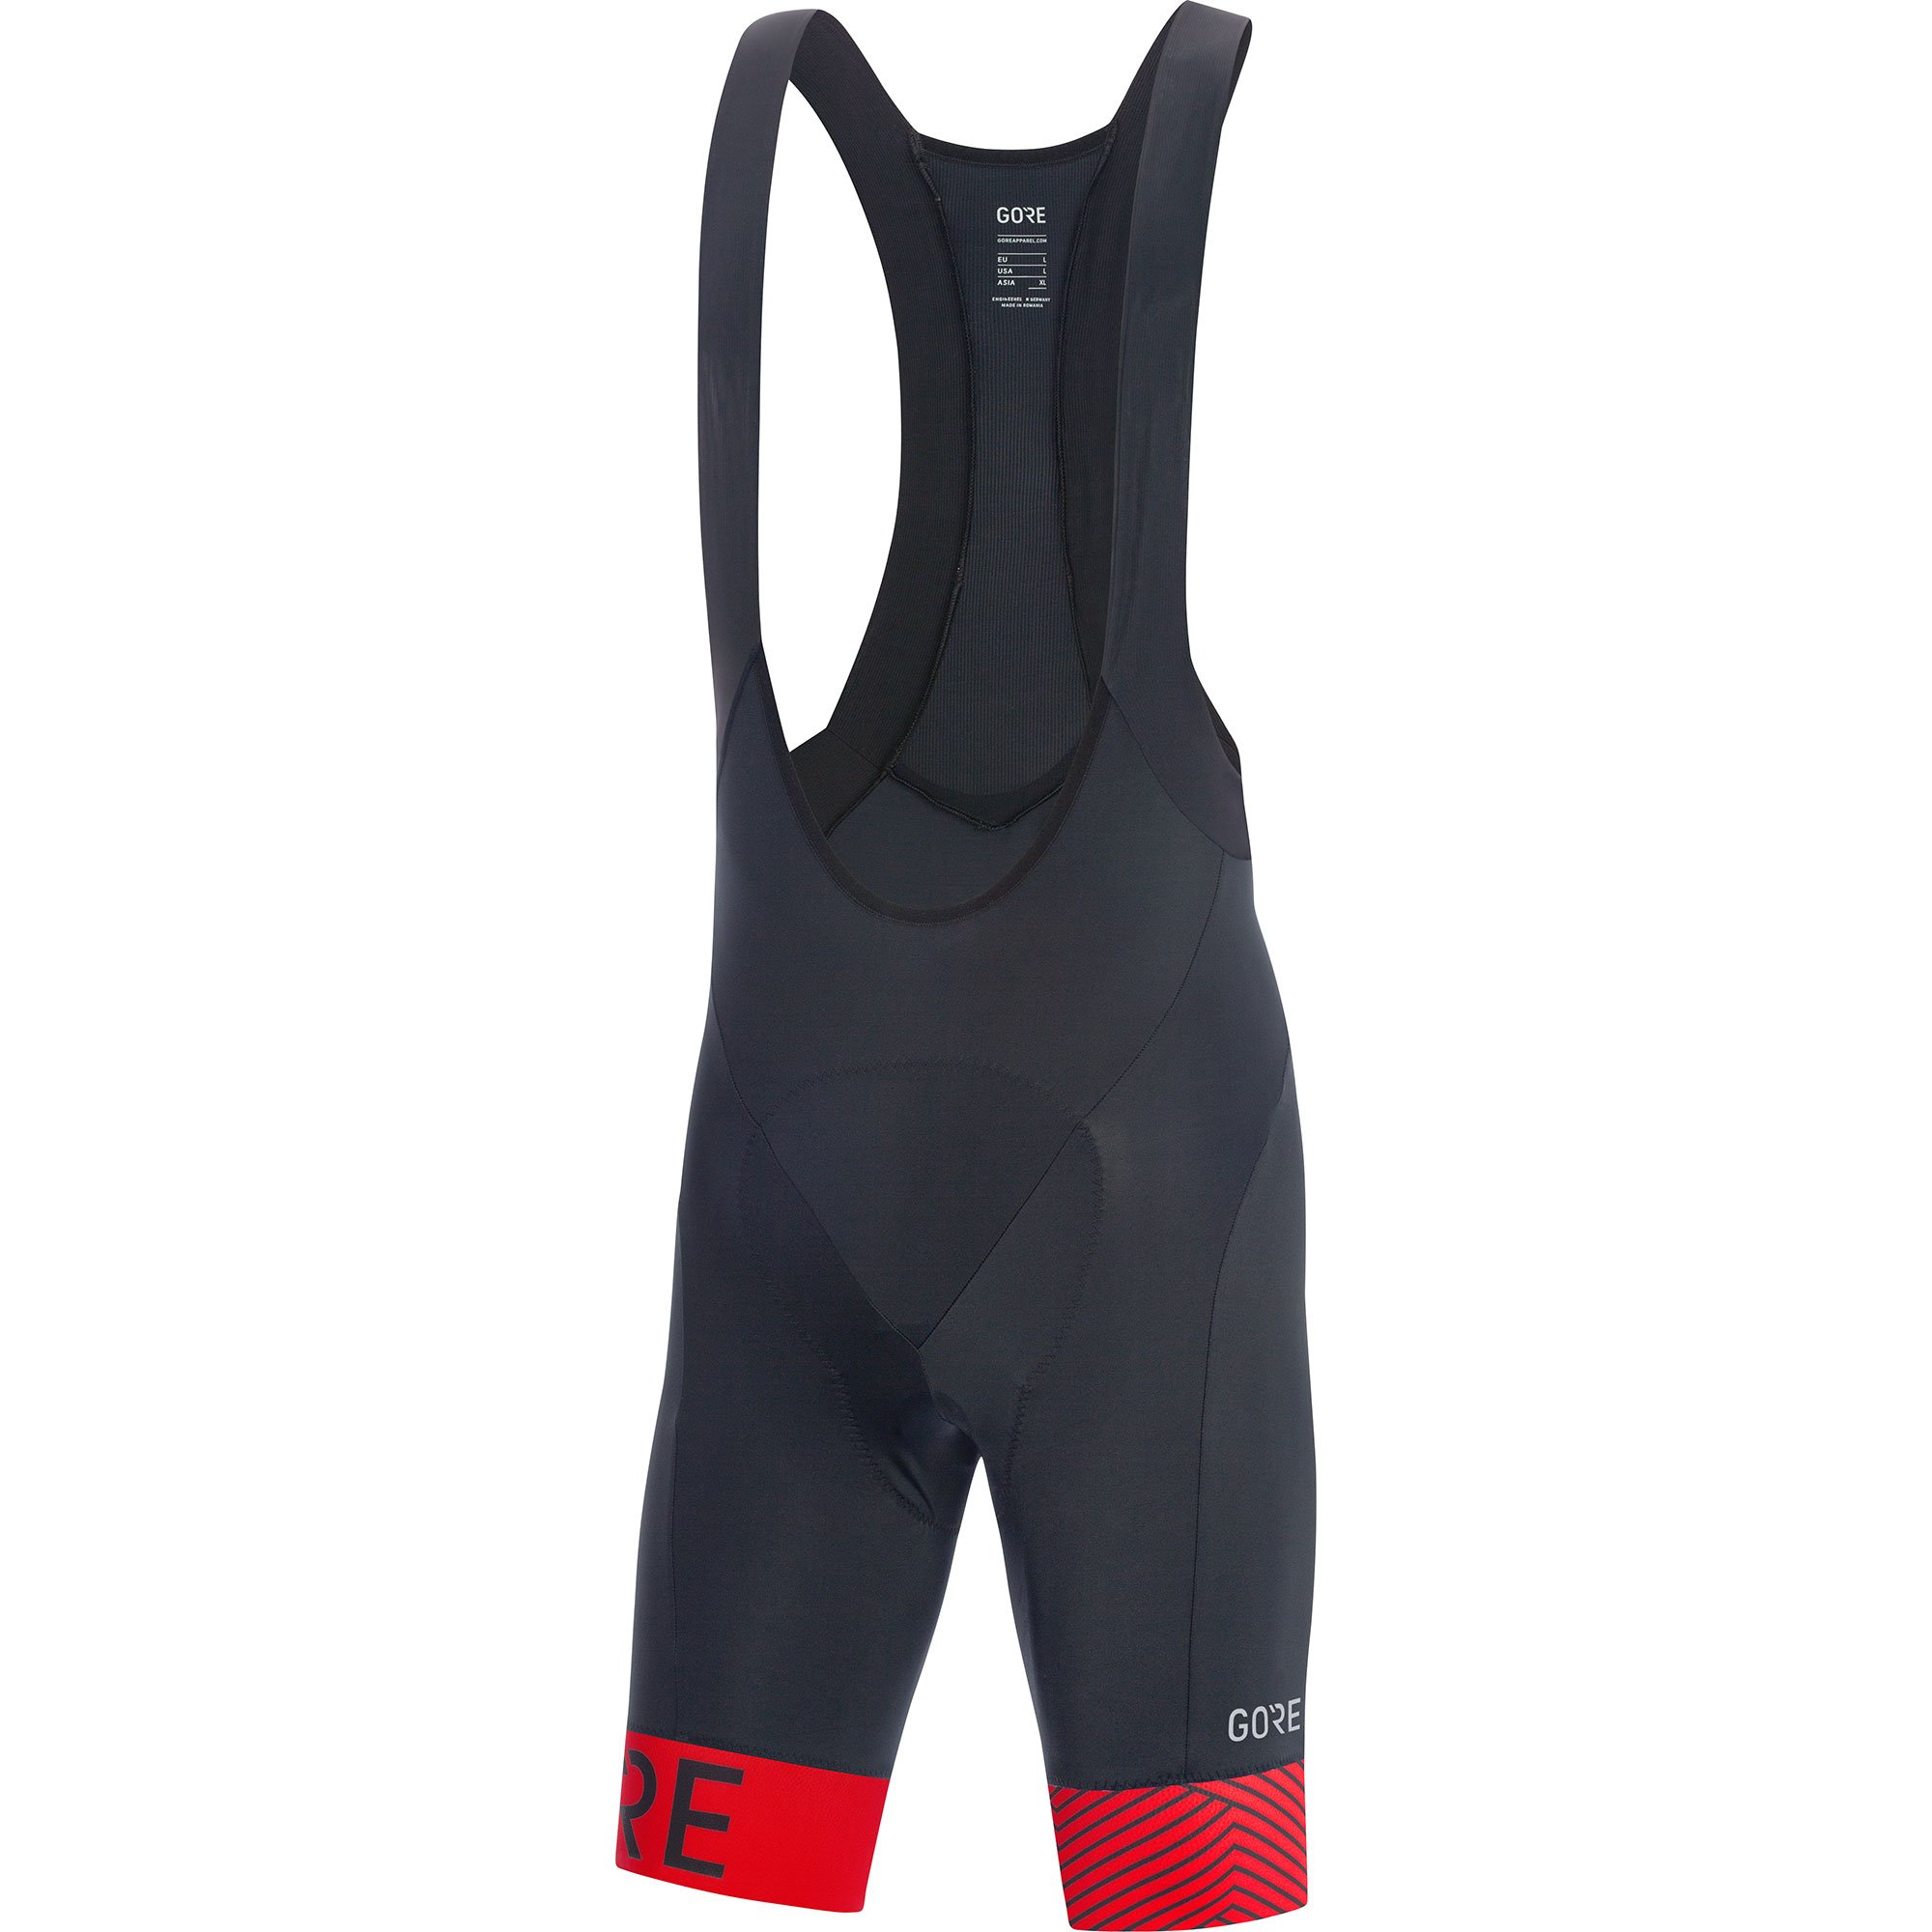 GORE Wear C5 Men's Short Cycling Bib Shorts With Seat Insert, XL, Black/Rot